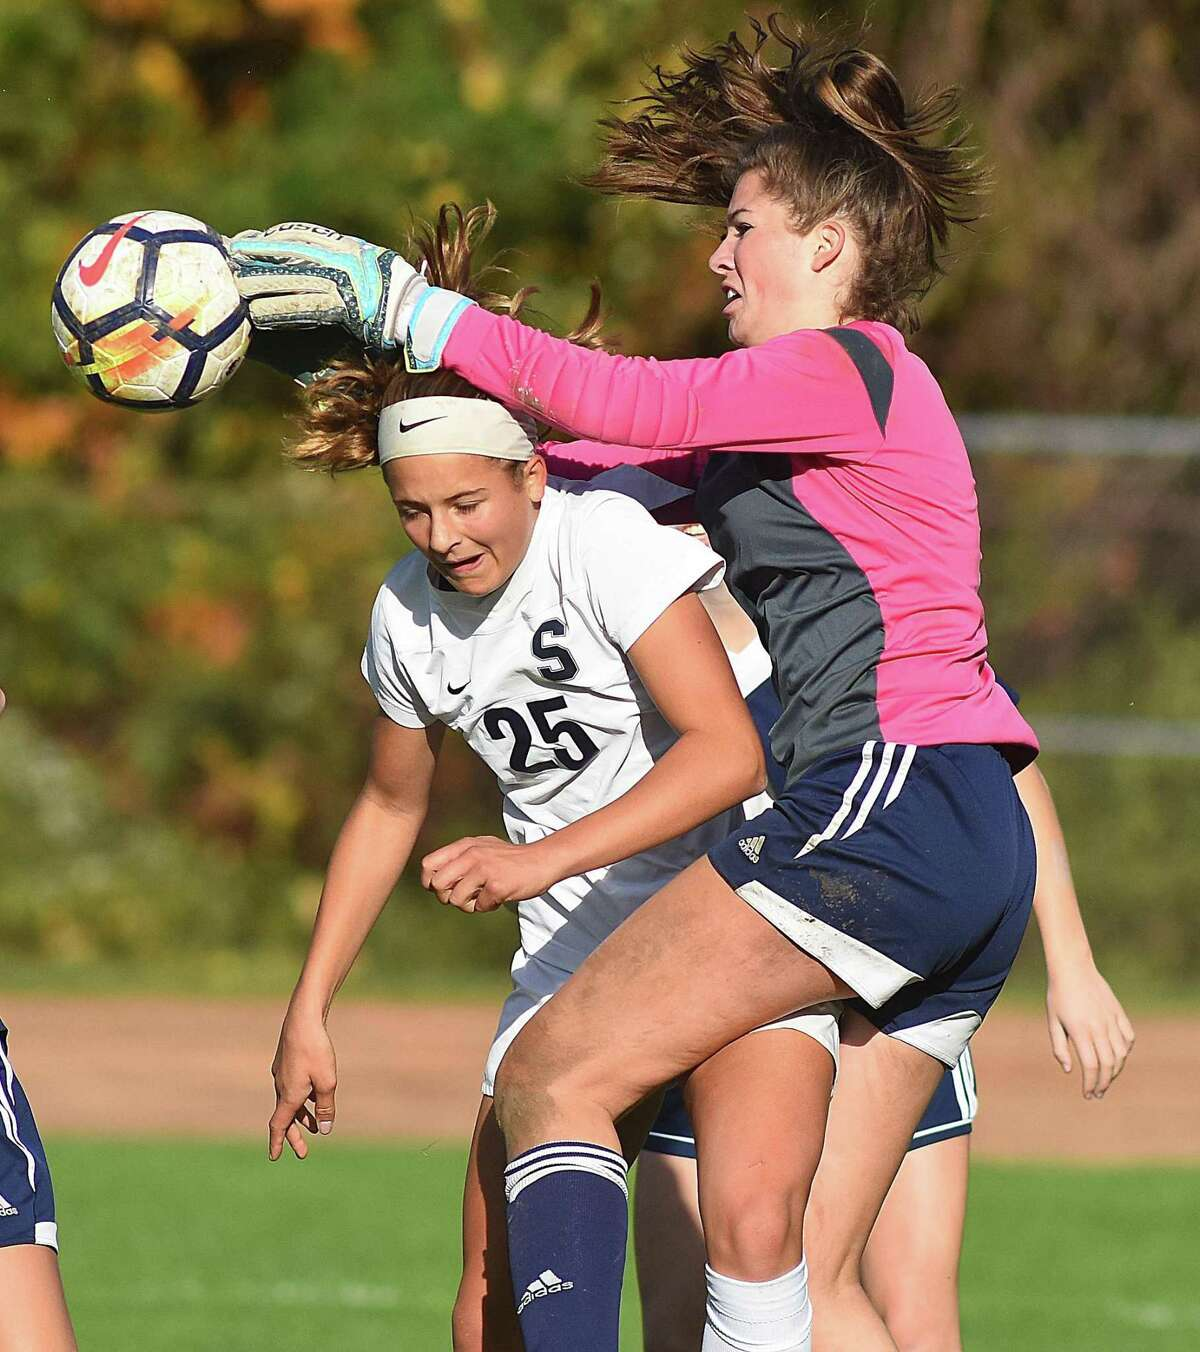 Wilton goalkeeper Taylor Floyd, right, goes up over the back of Staples' Marlo Von der Ahe during Friday's FCIAC girls soccer quarterfinal at Albie Loeffler Field in Westport. Staples won 2-0.